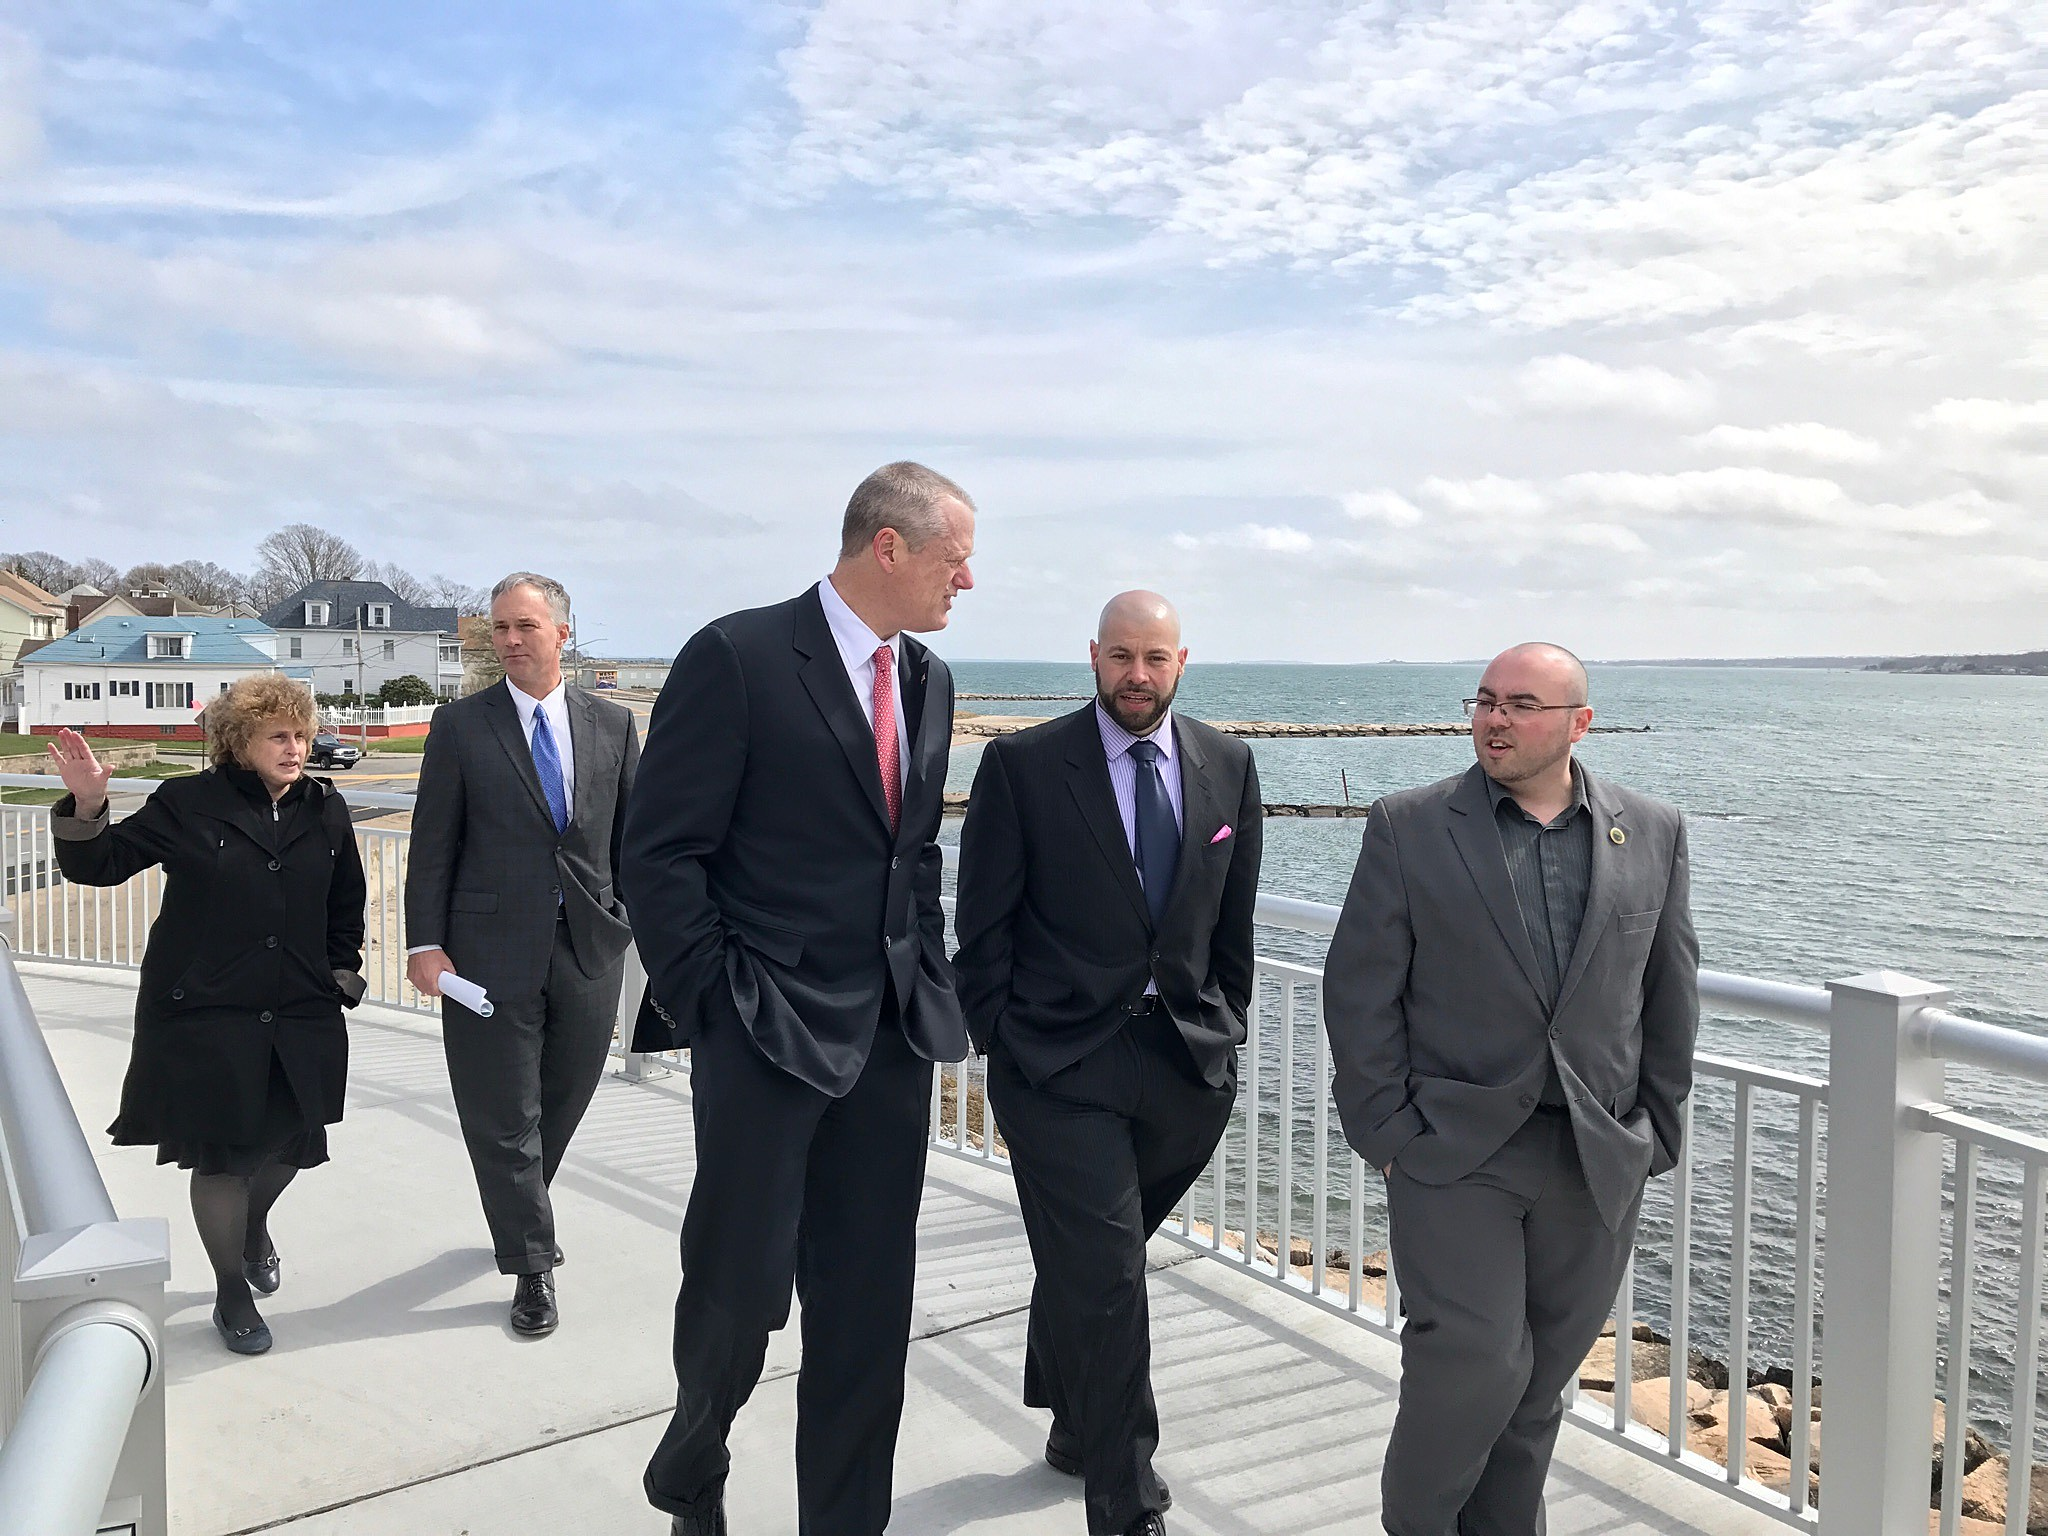 Officials walked the newly opened CoveWalk in New Bedford's south end Wednesday. Greg Desrosiers/TSM